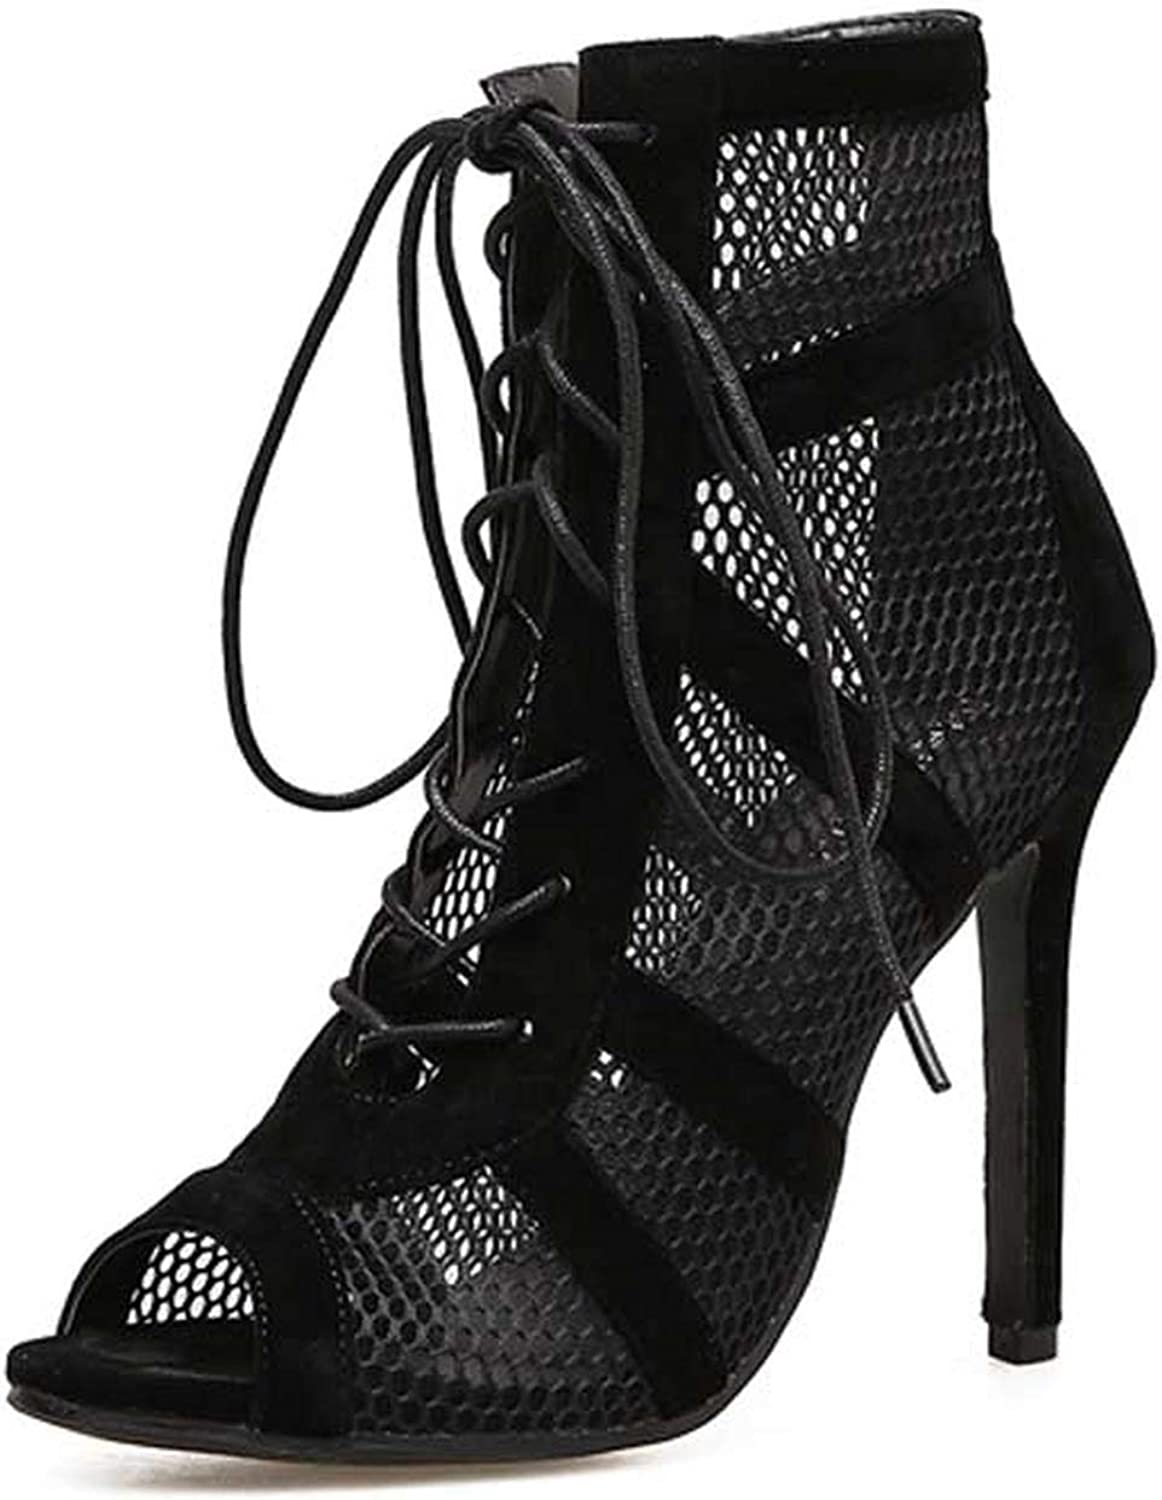 Ches Show Black Net Fabric Cross Strap Sexy high Heel Sandals Woman shoes Pumps Lace-up Peep Toe Sandals